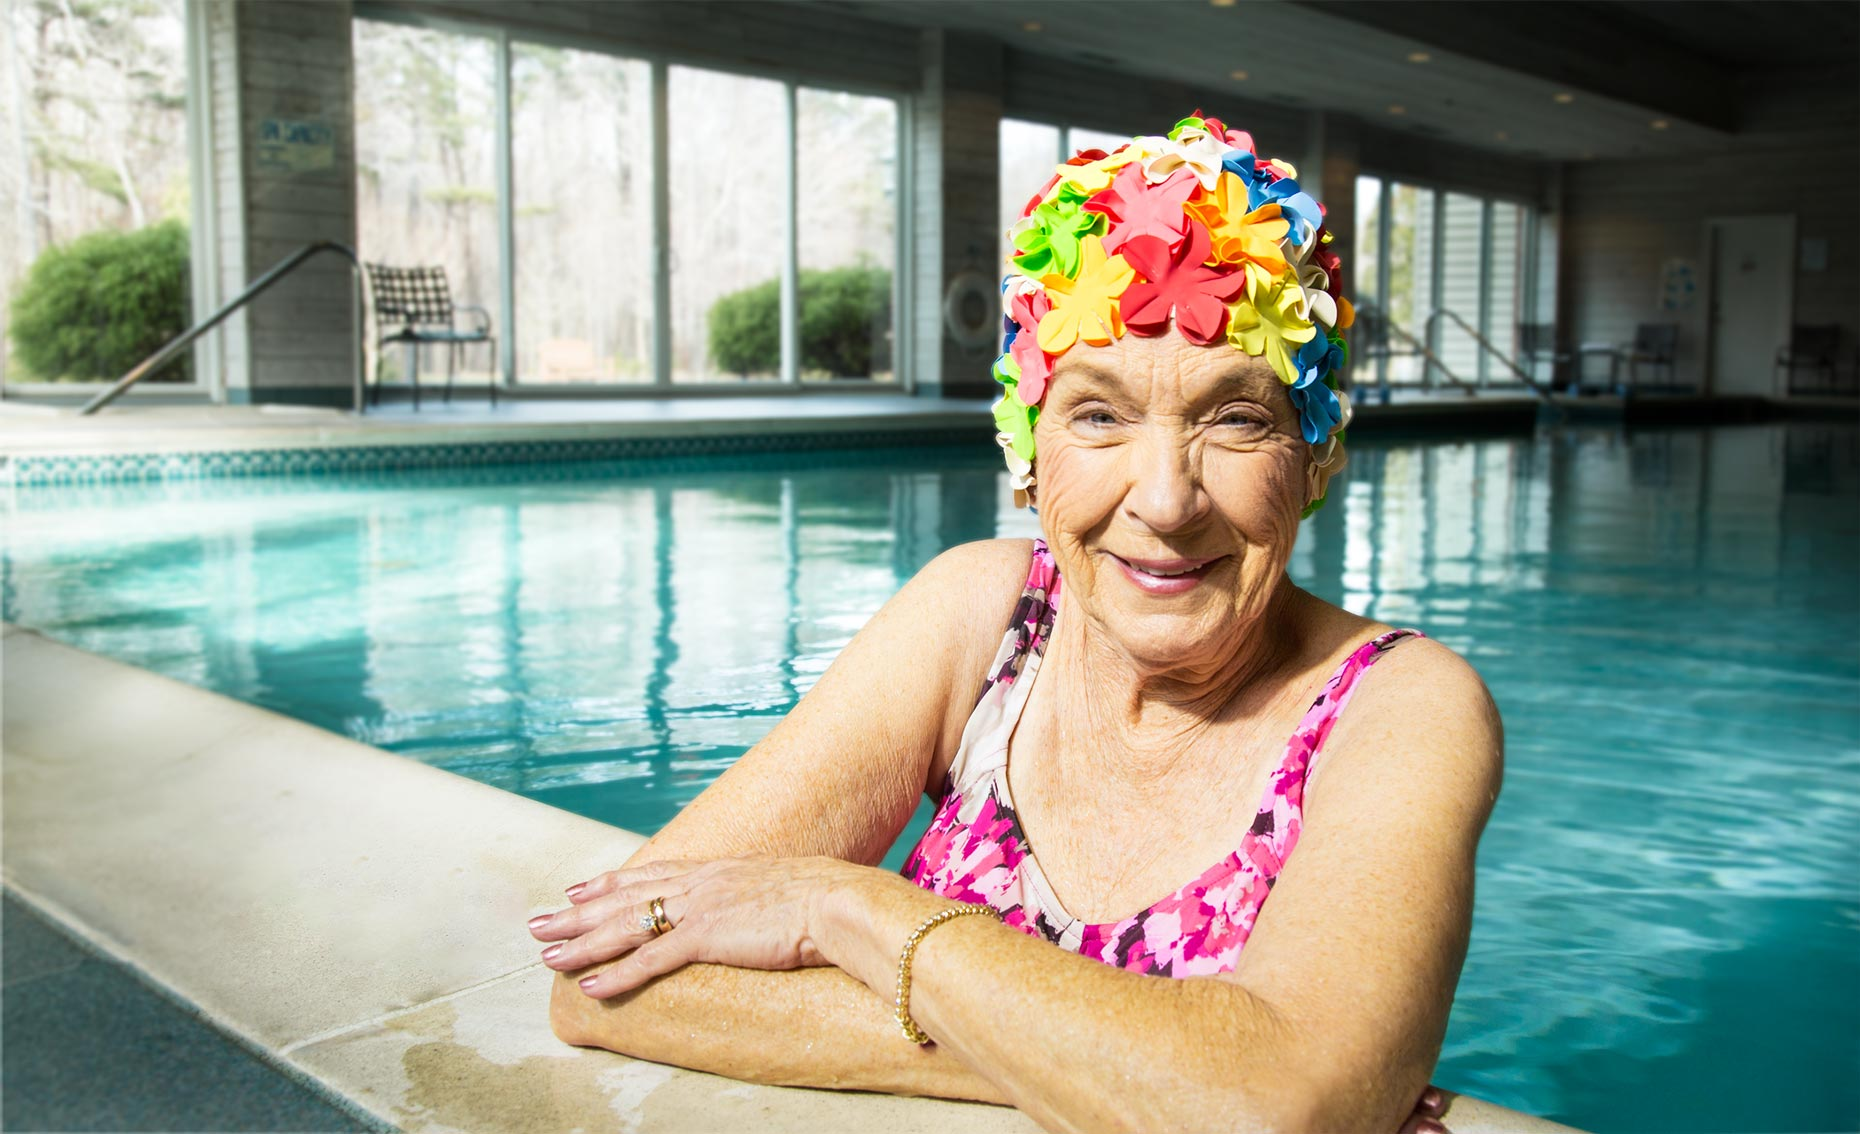 Swimmer-elderly, woman, pool, bathing cap